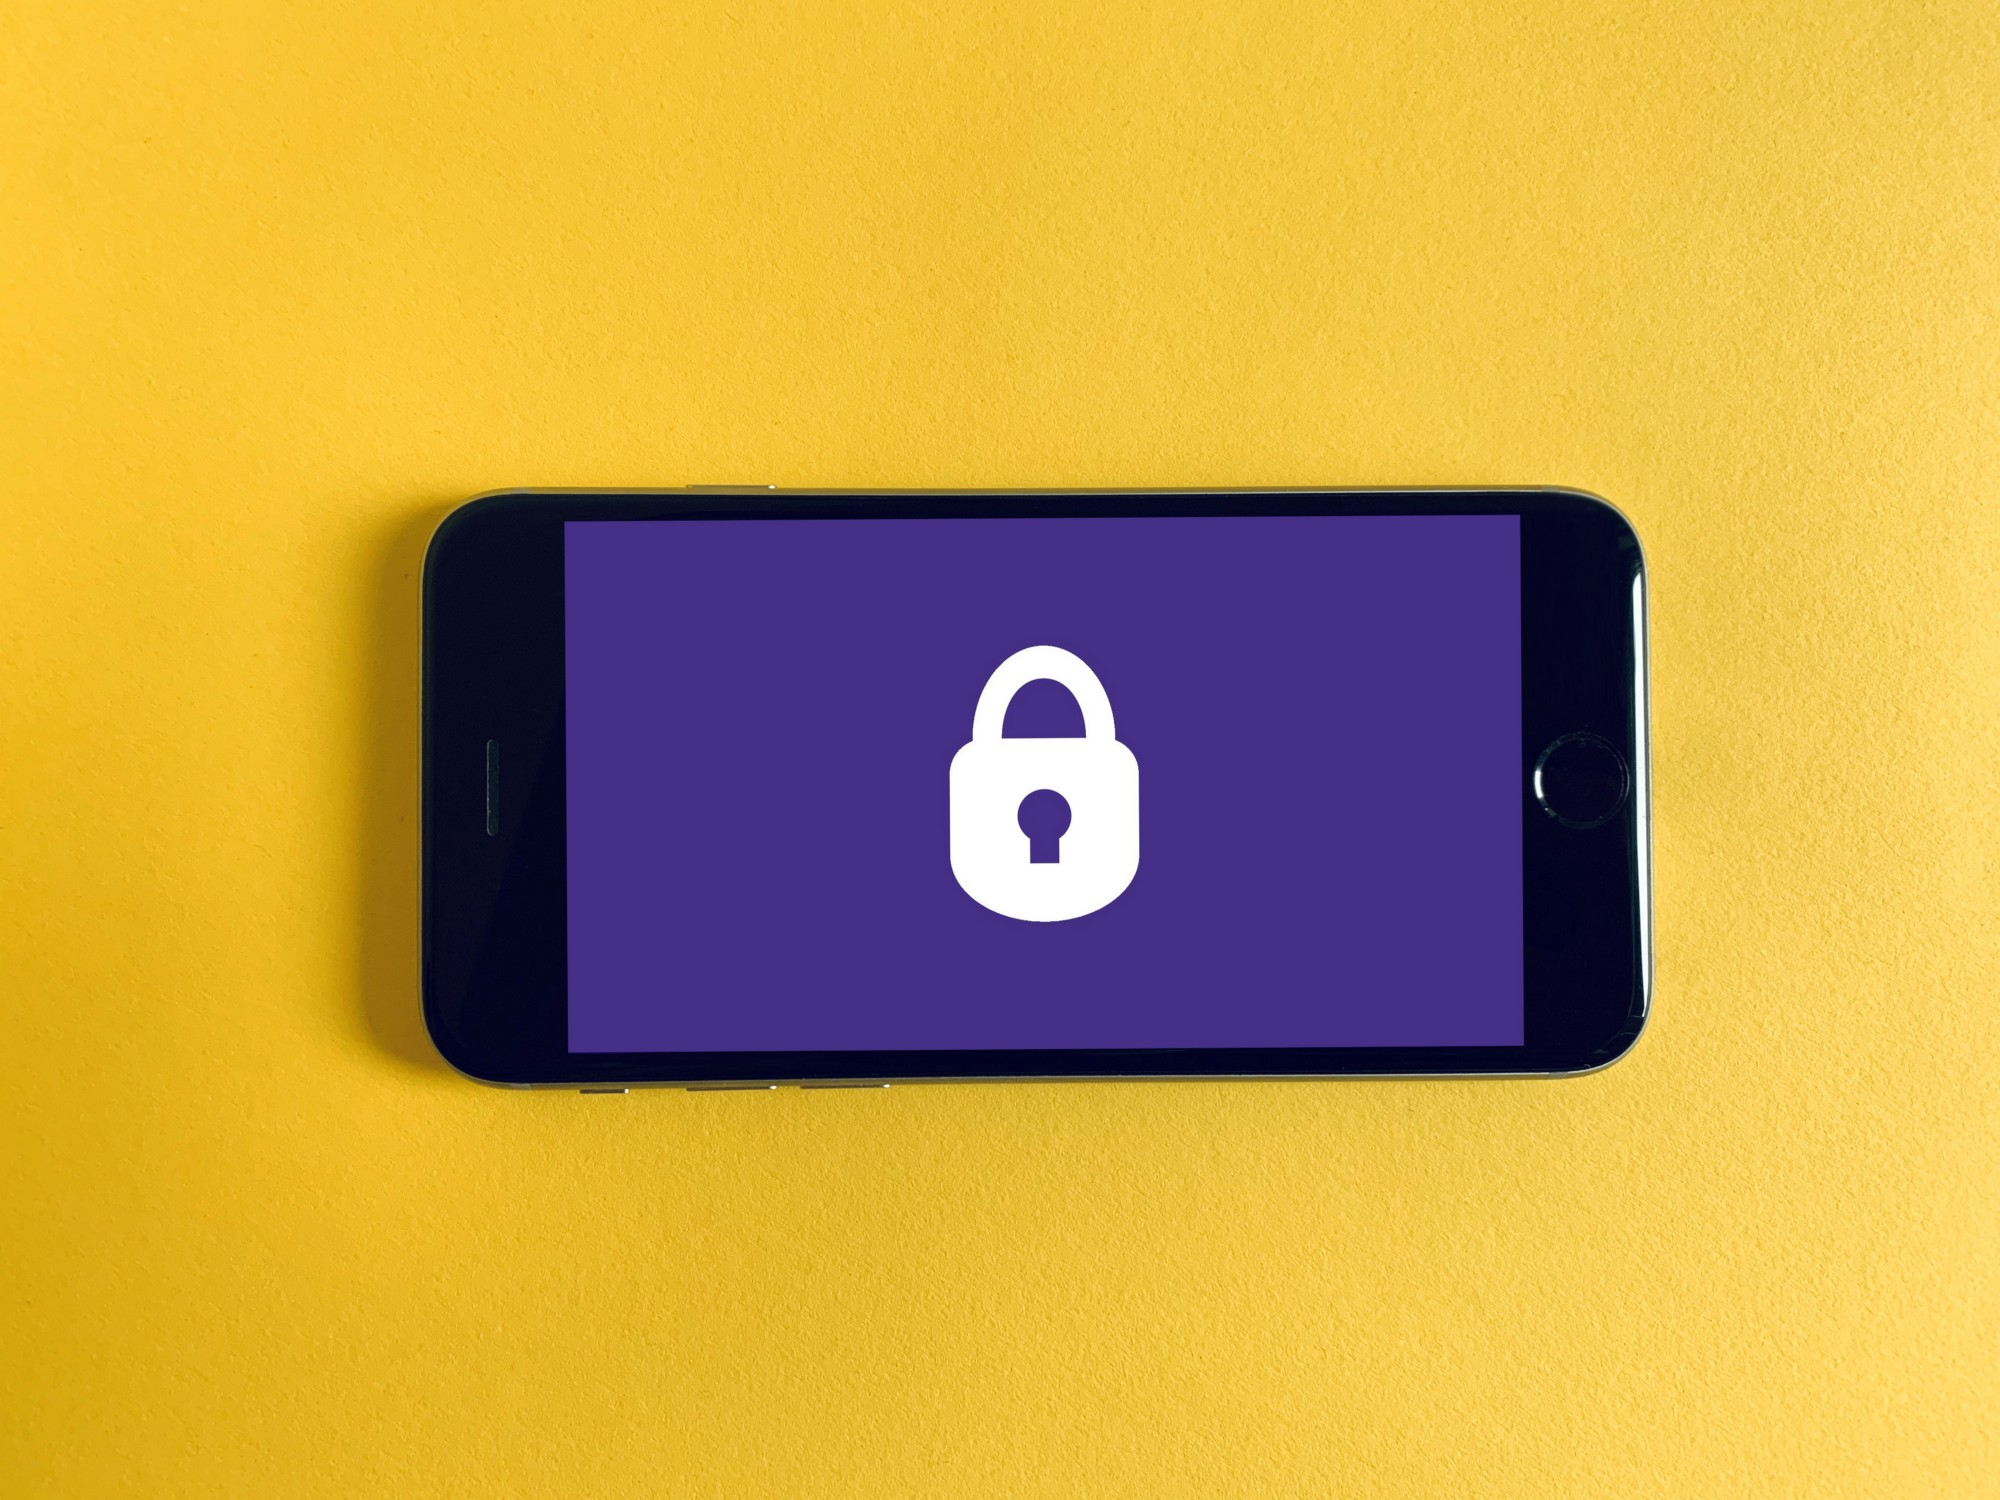 A phone with lock photo on the screen